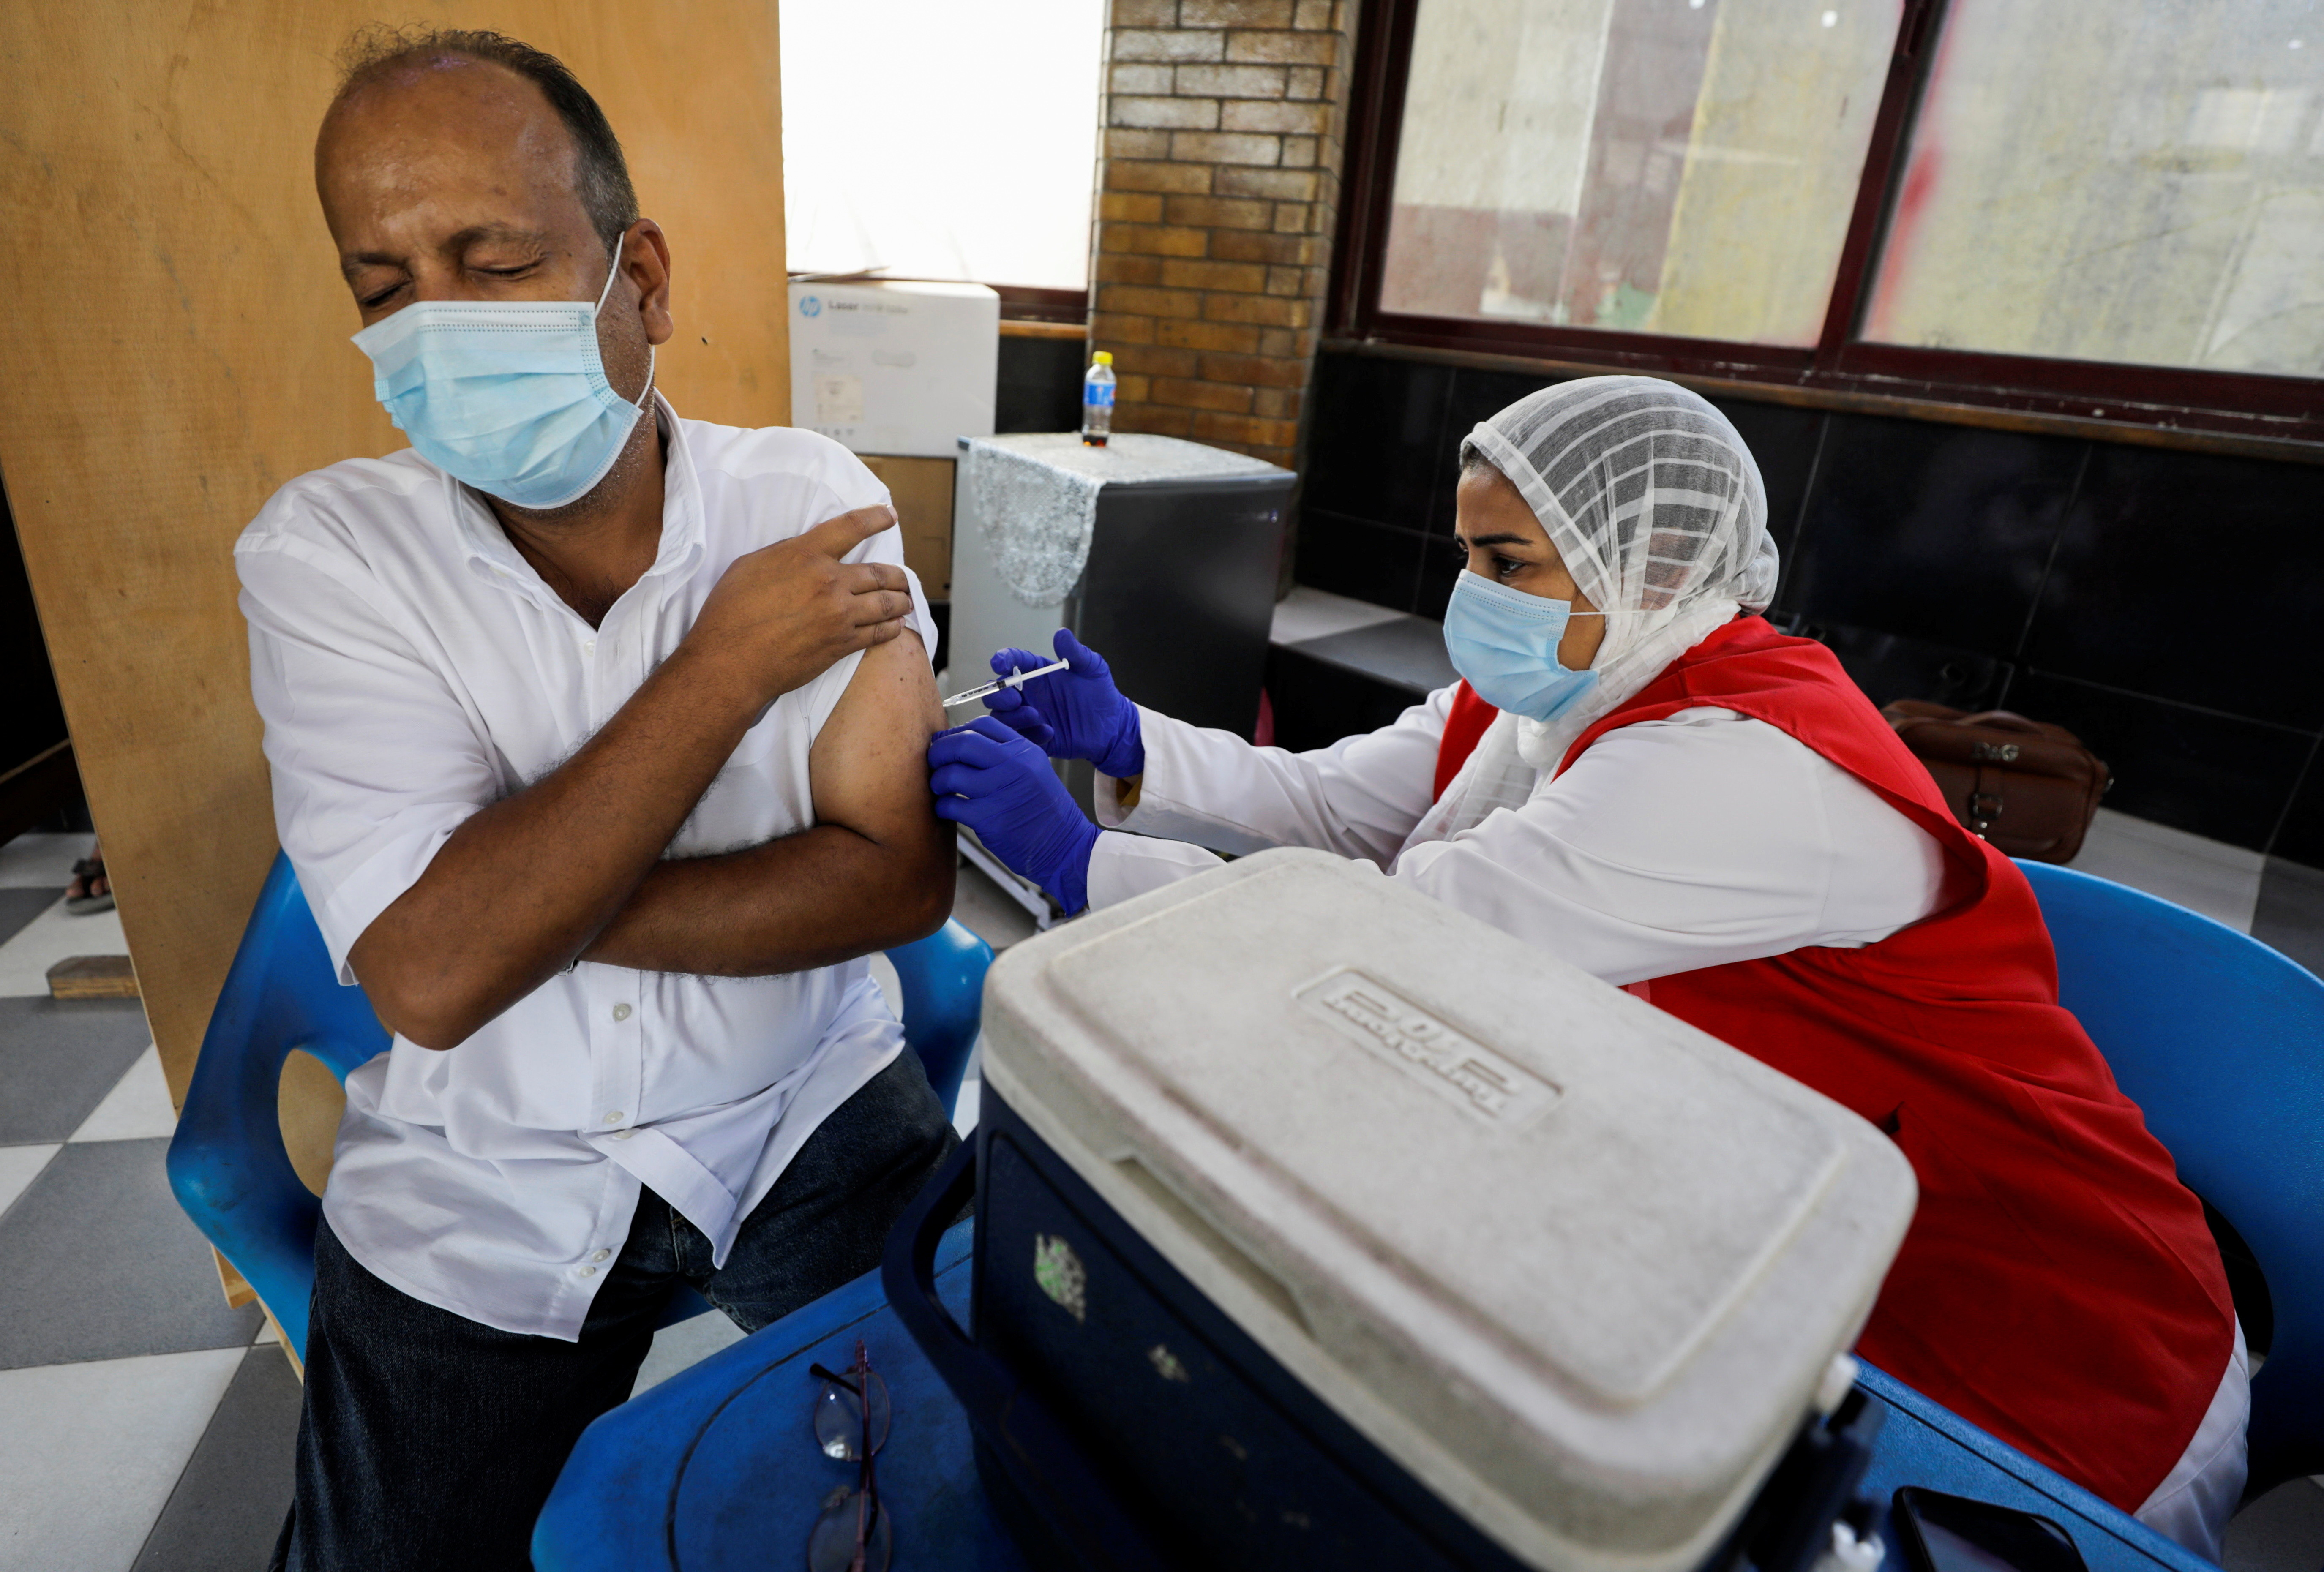 A man receives a dose of the coronavirus disease (COVID-19) vaccine at one of the youth centres where citizens can get the vaccines without prior registration, in an effort to boost the country's vaccination drive, in Cairo, Egypt, September 27, 2021. REUTERS/Mohamed Abd El Ghany - RC2EYP9JNUV0